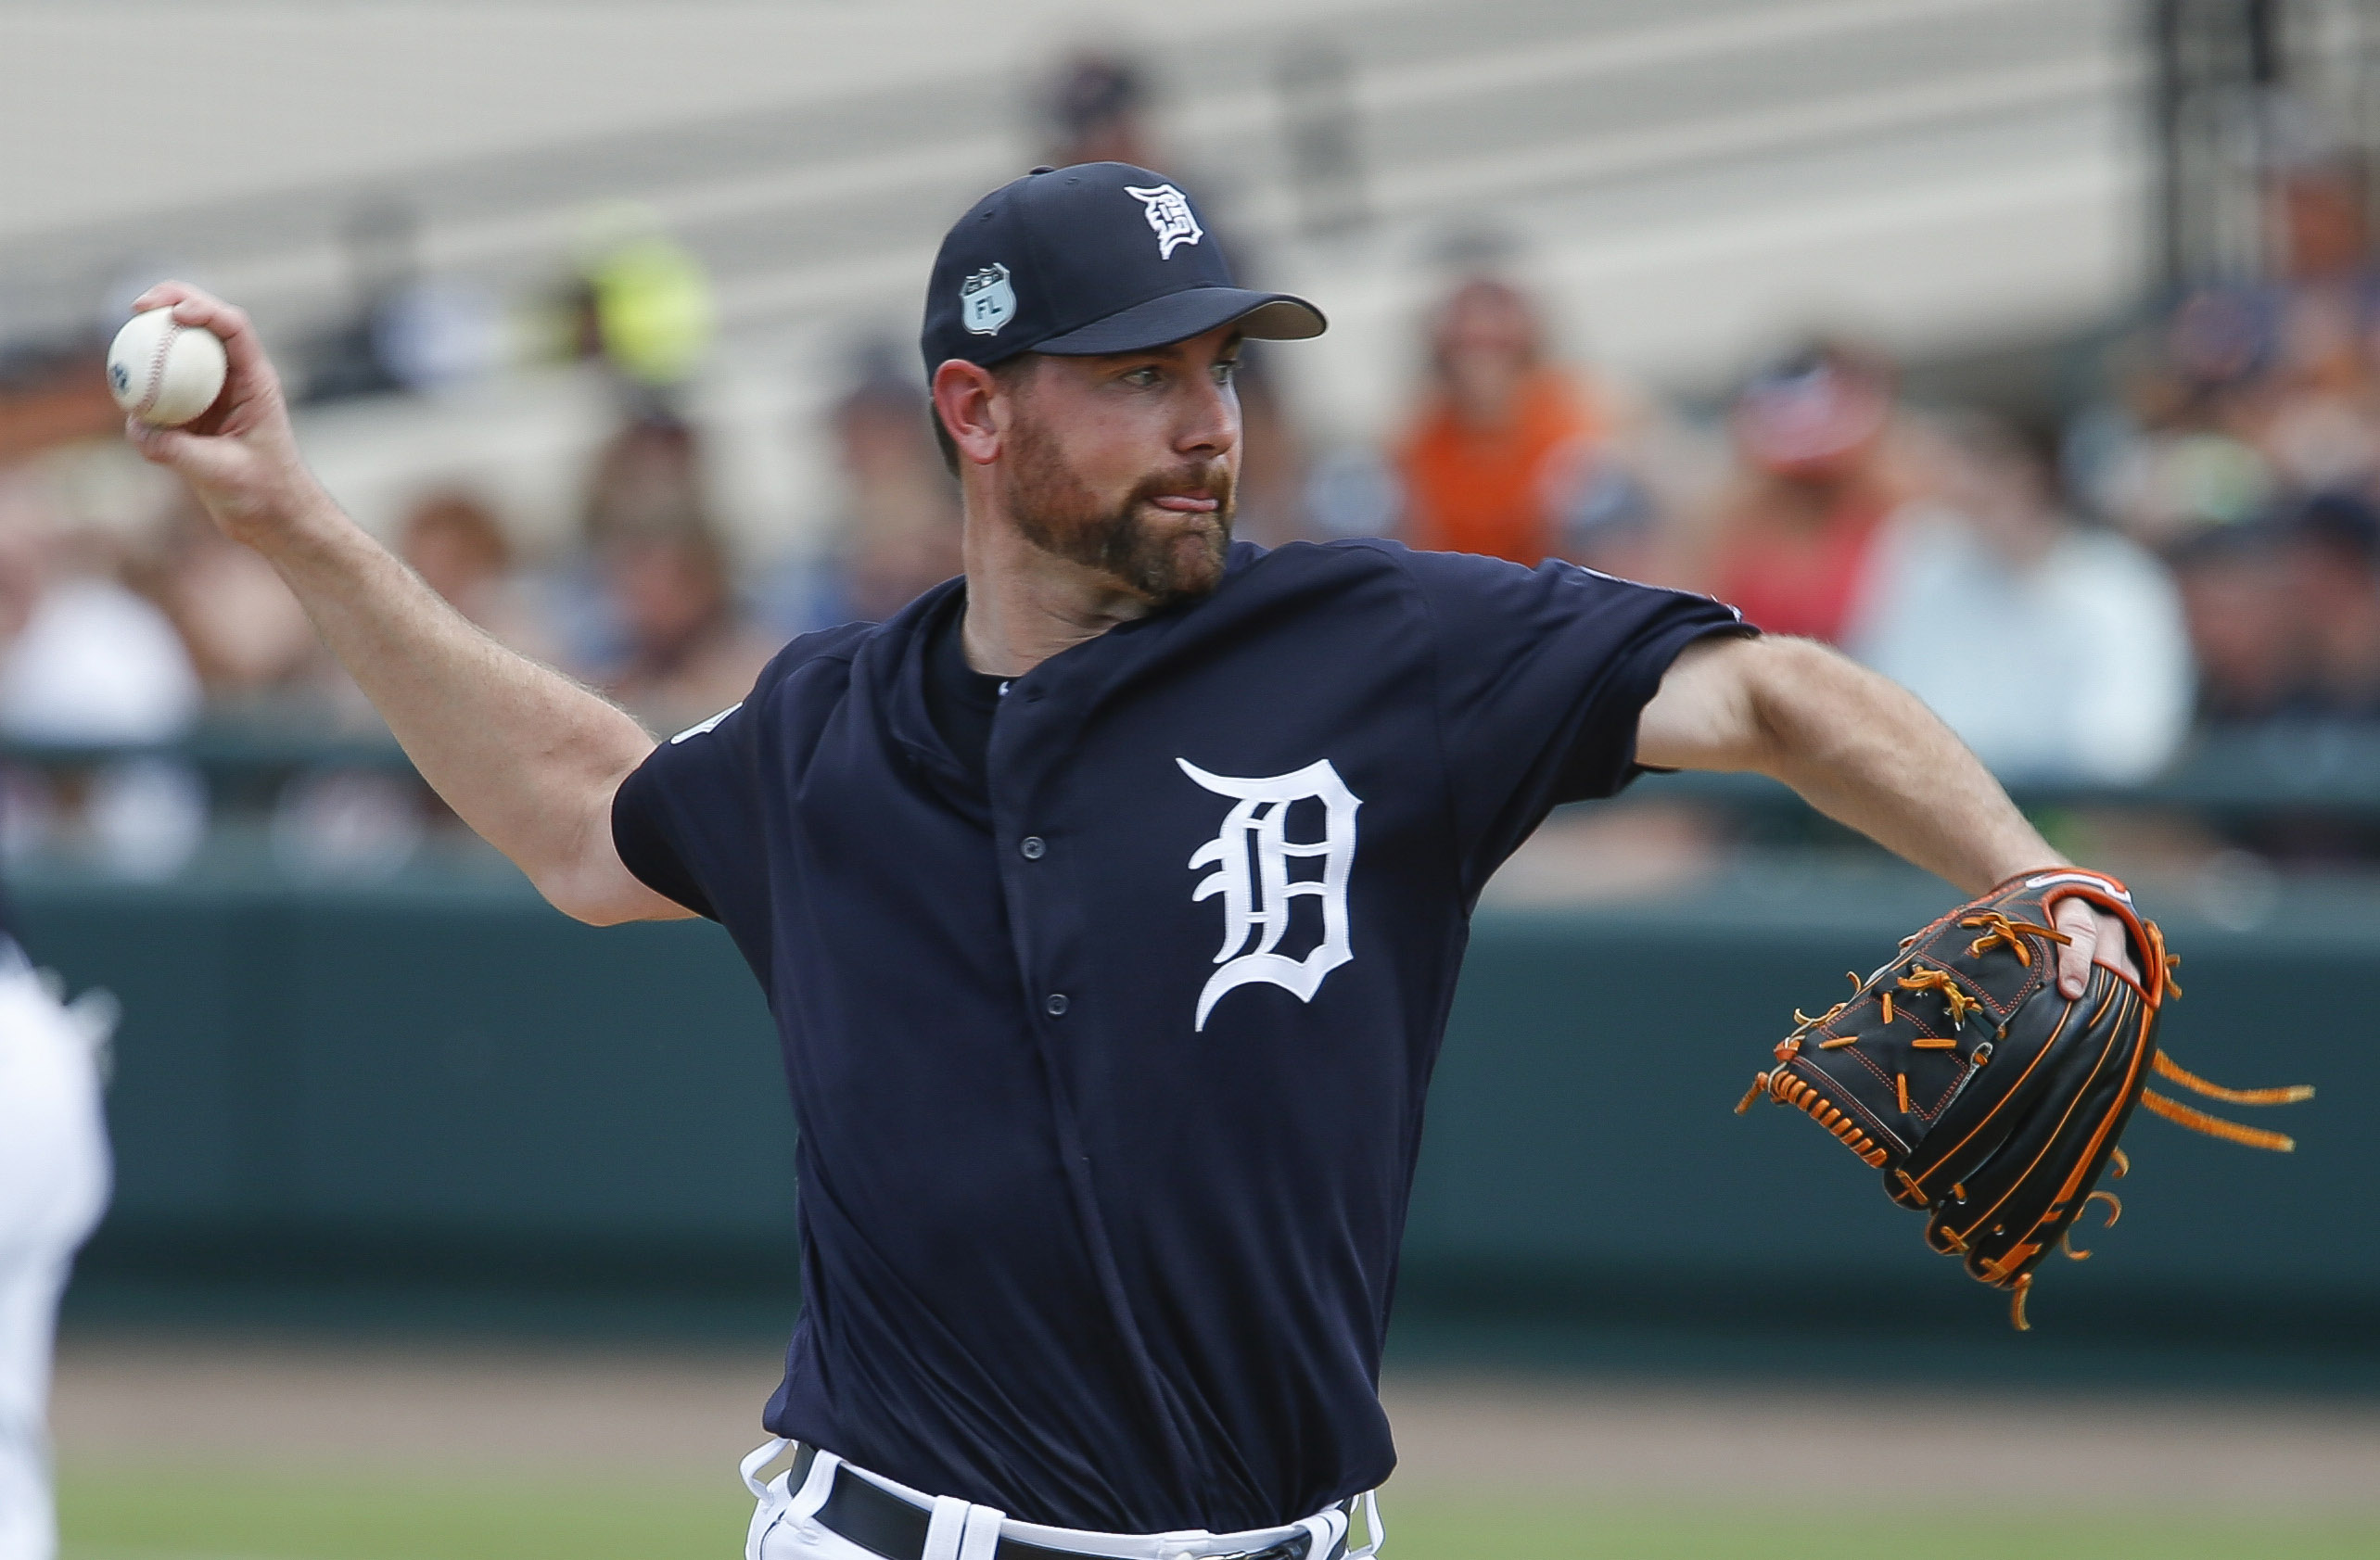 9897313-mlb-spring-training-baltimore-orioles-at-detroit-tigers